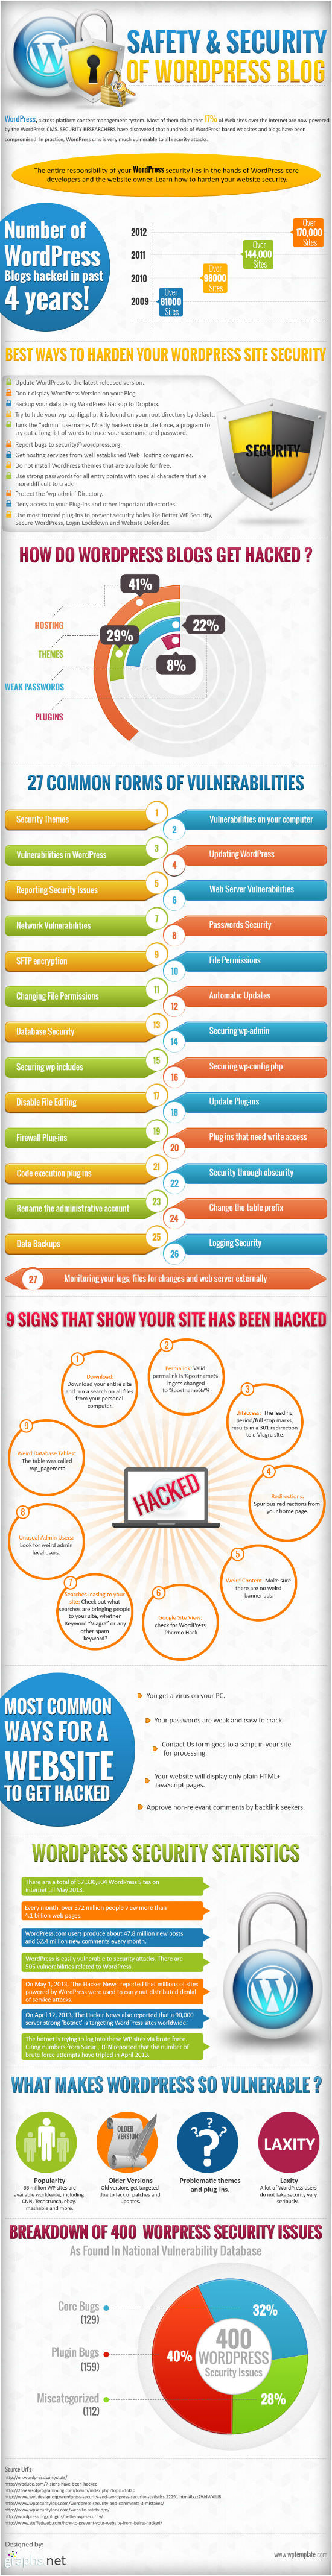 wp-security-infographic-large-w550